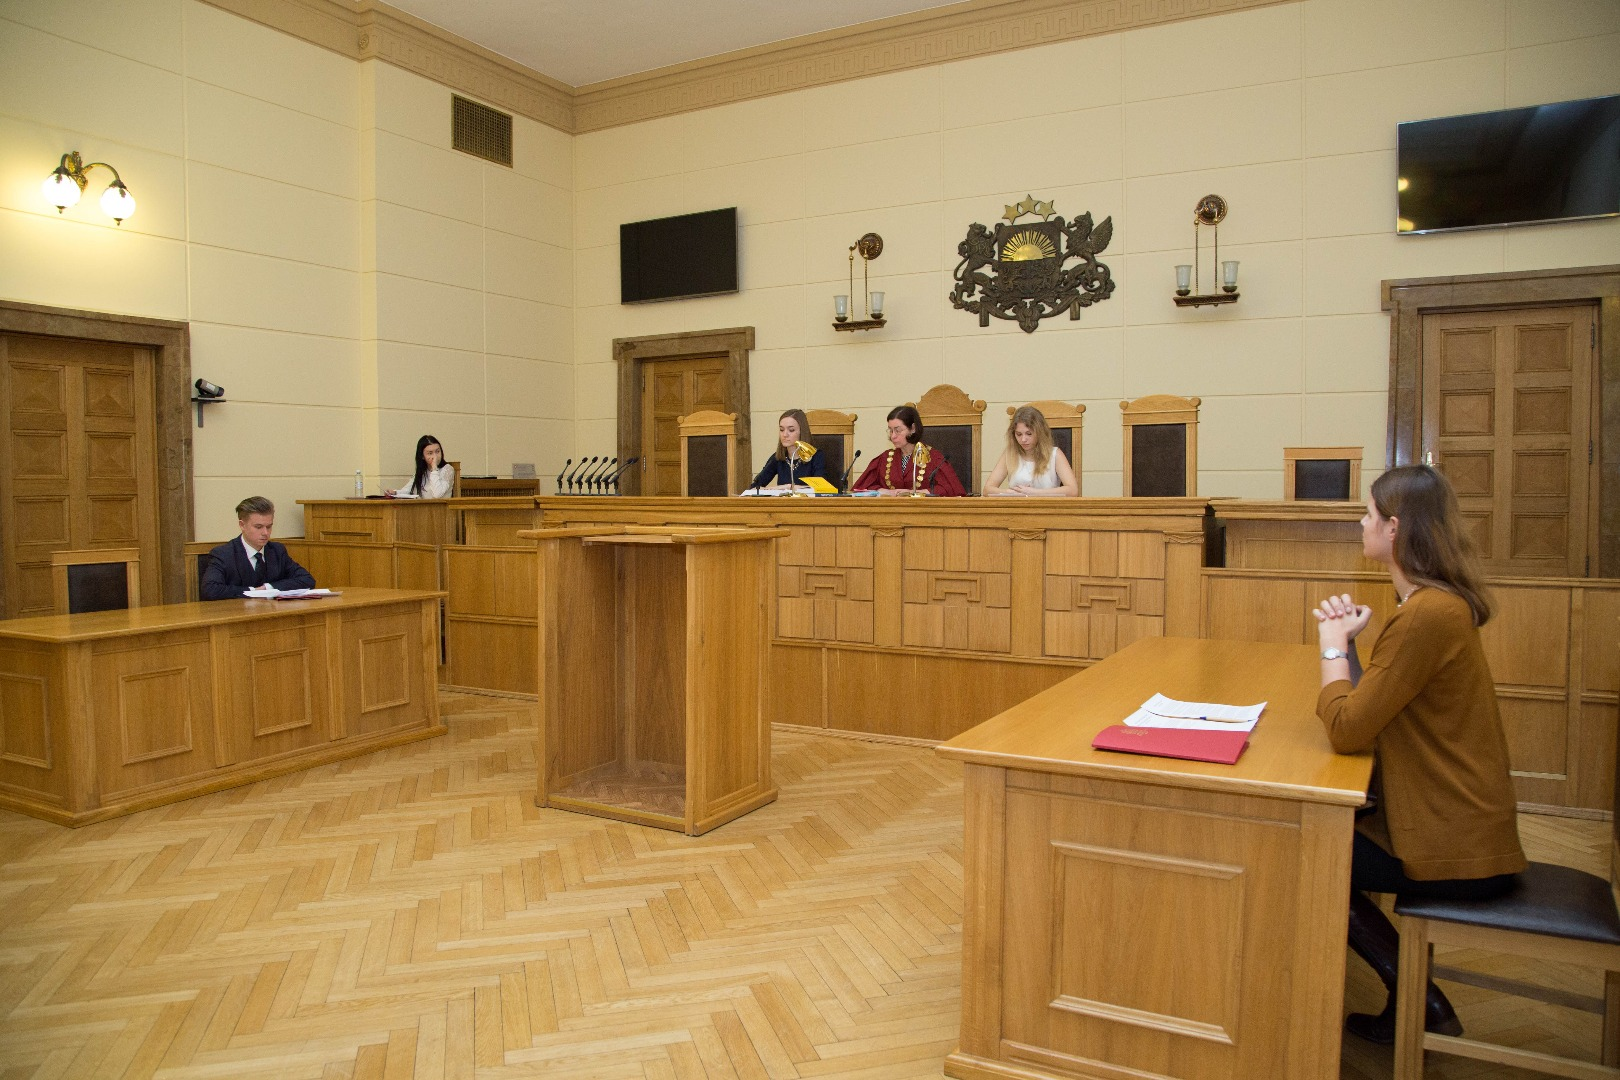 14.02.2018. On the Shadow Day, students learn about the work of a judge by participating in a moot court